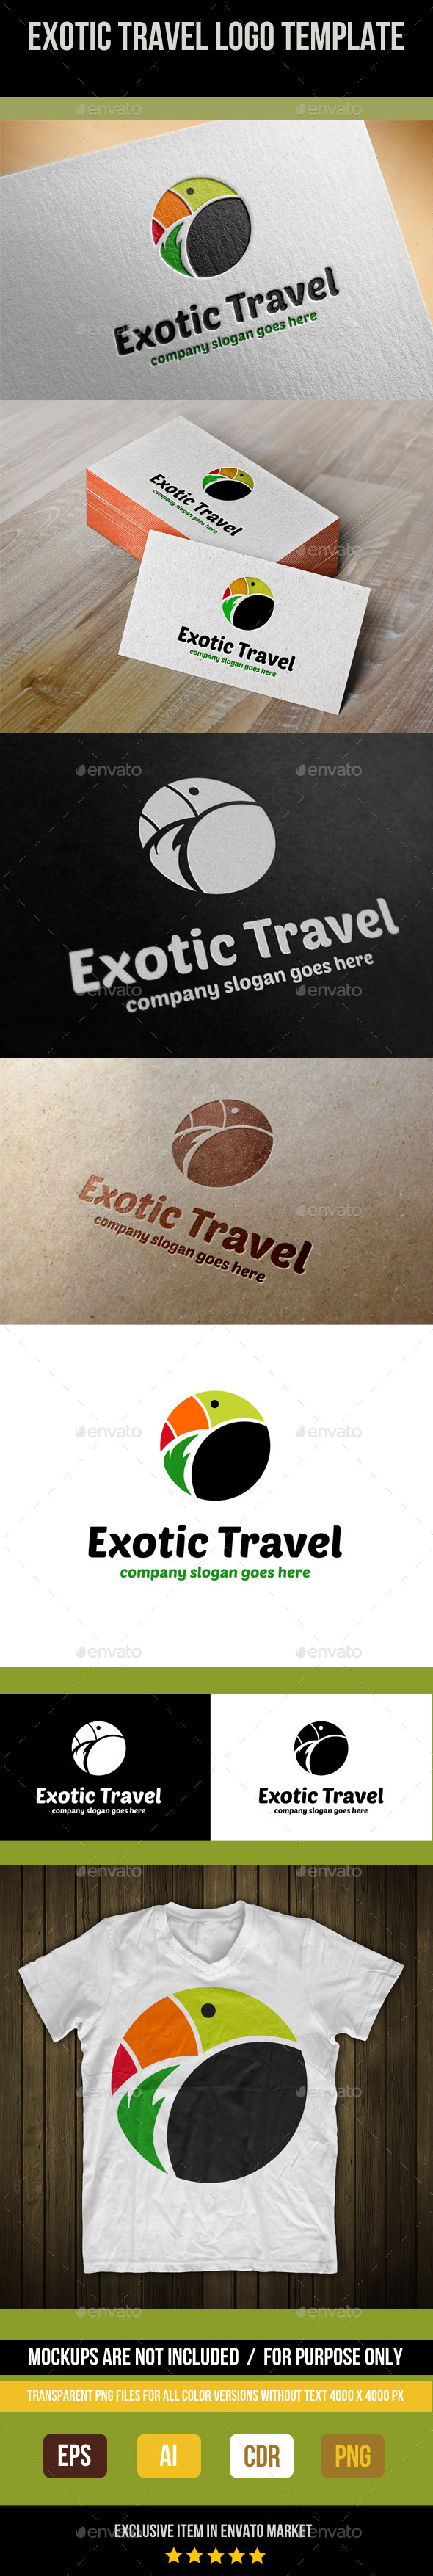 GraphicRiver Exotic Travel Logo Template 9024611